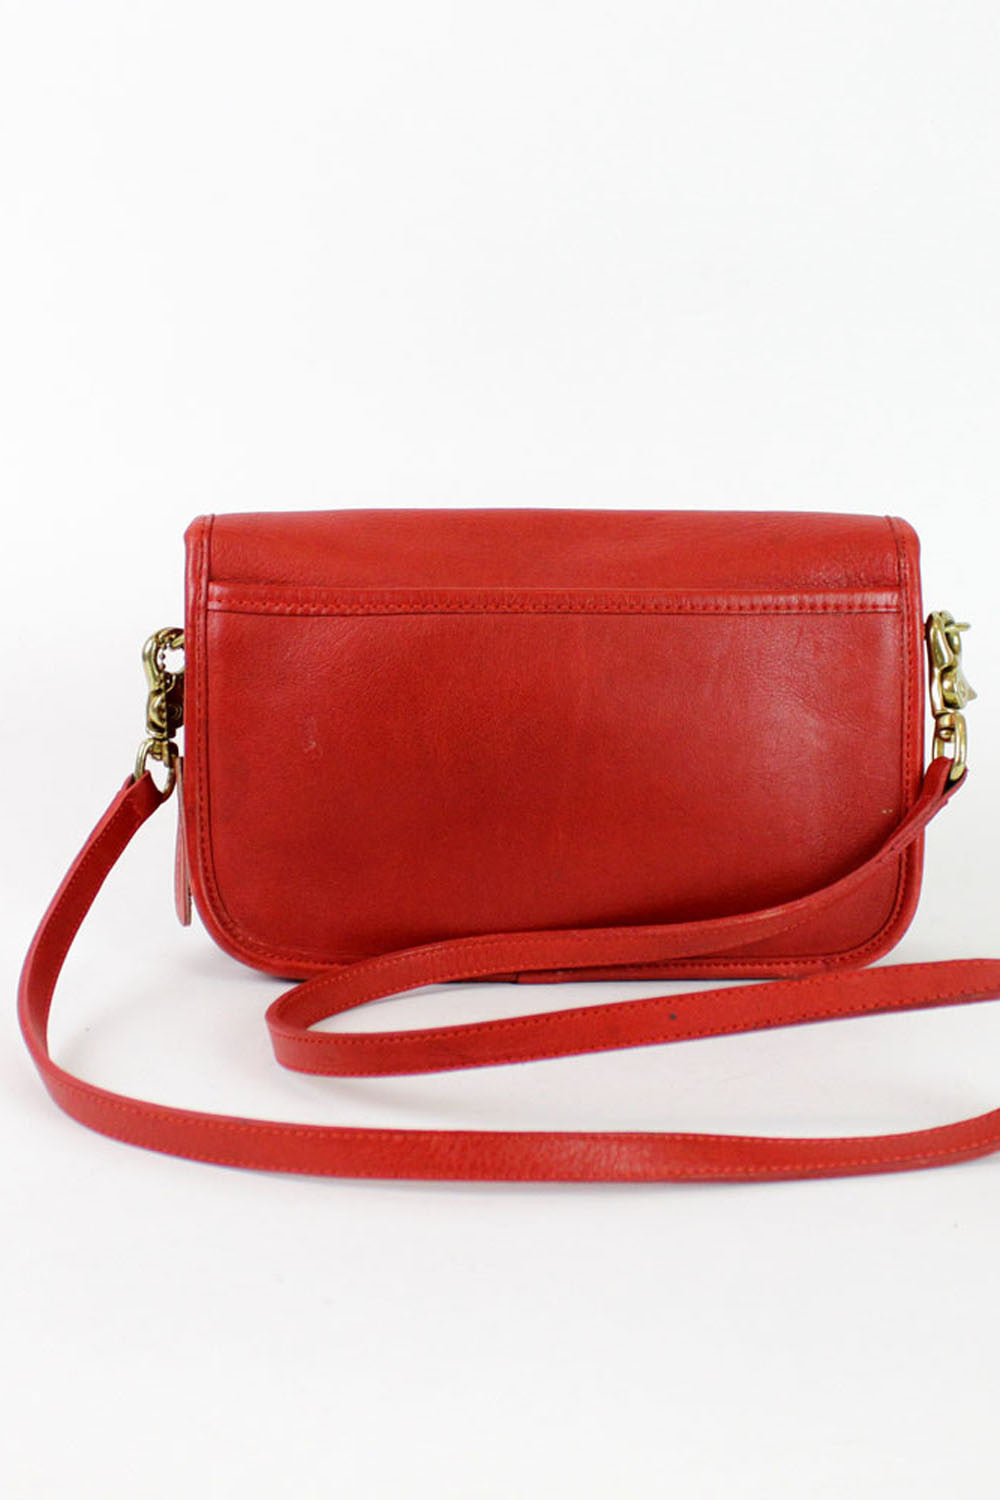 Coach red crossbody